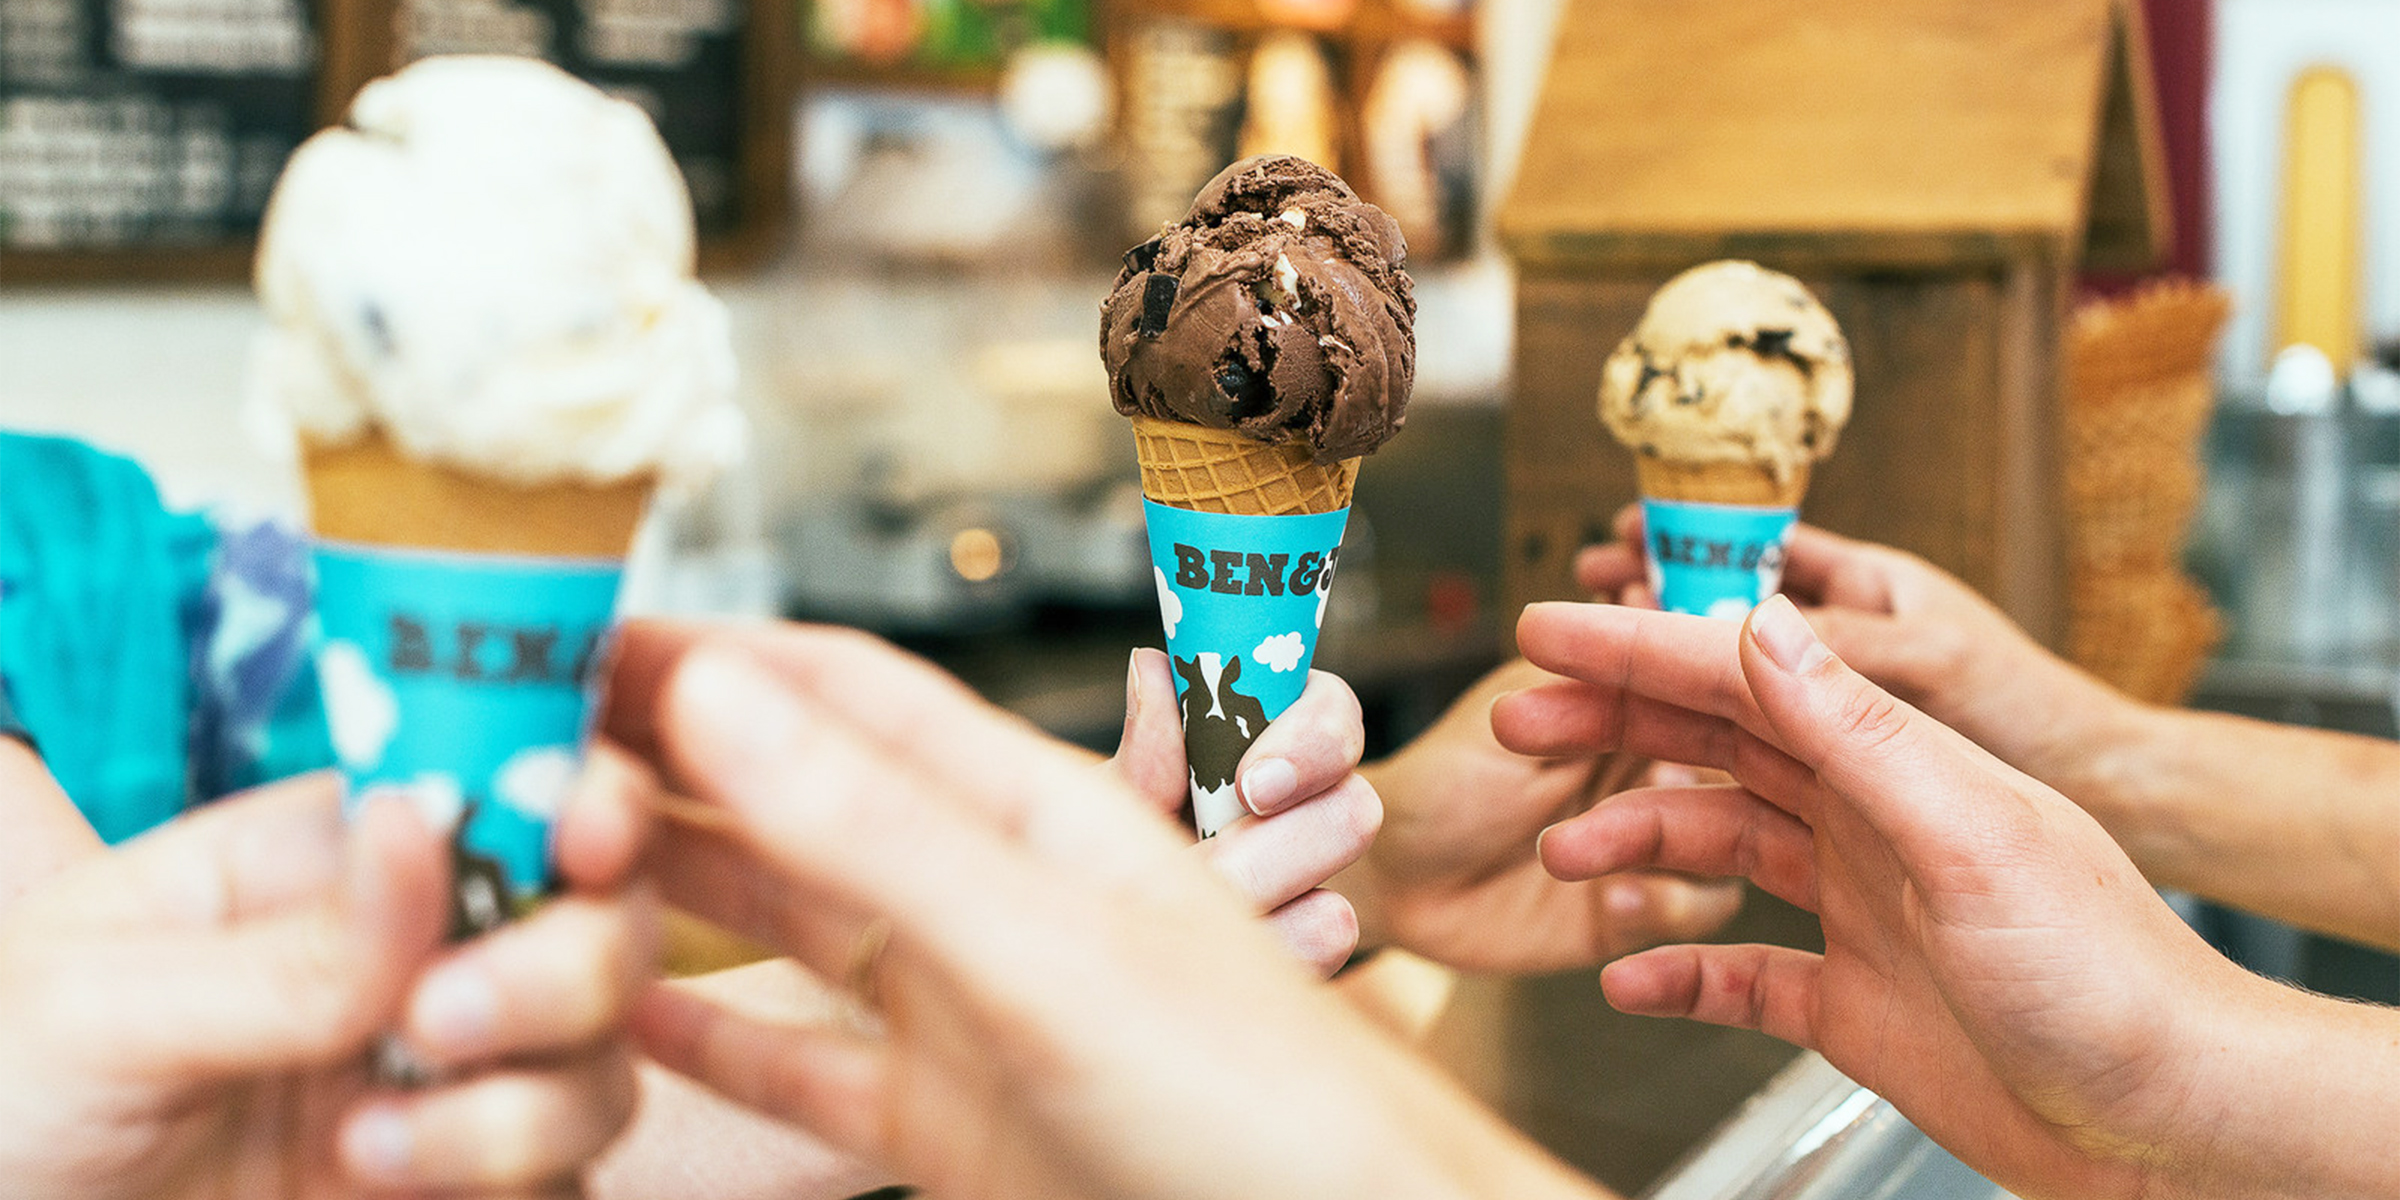 Ben & Jerry's officially cancels Free Cone Day because of coronavirus